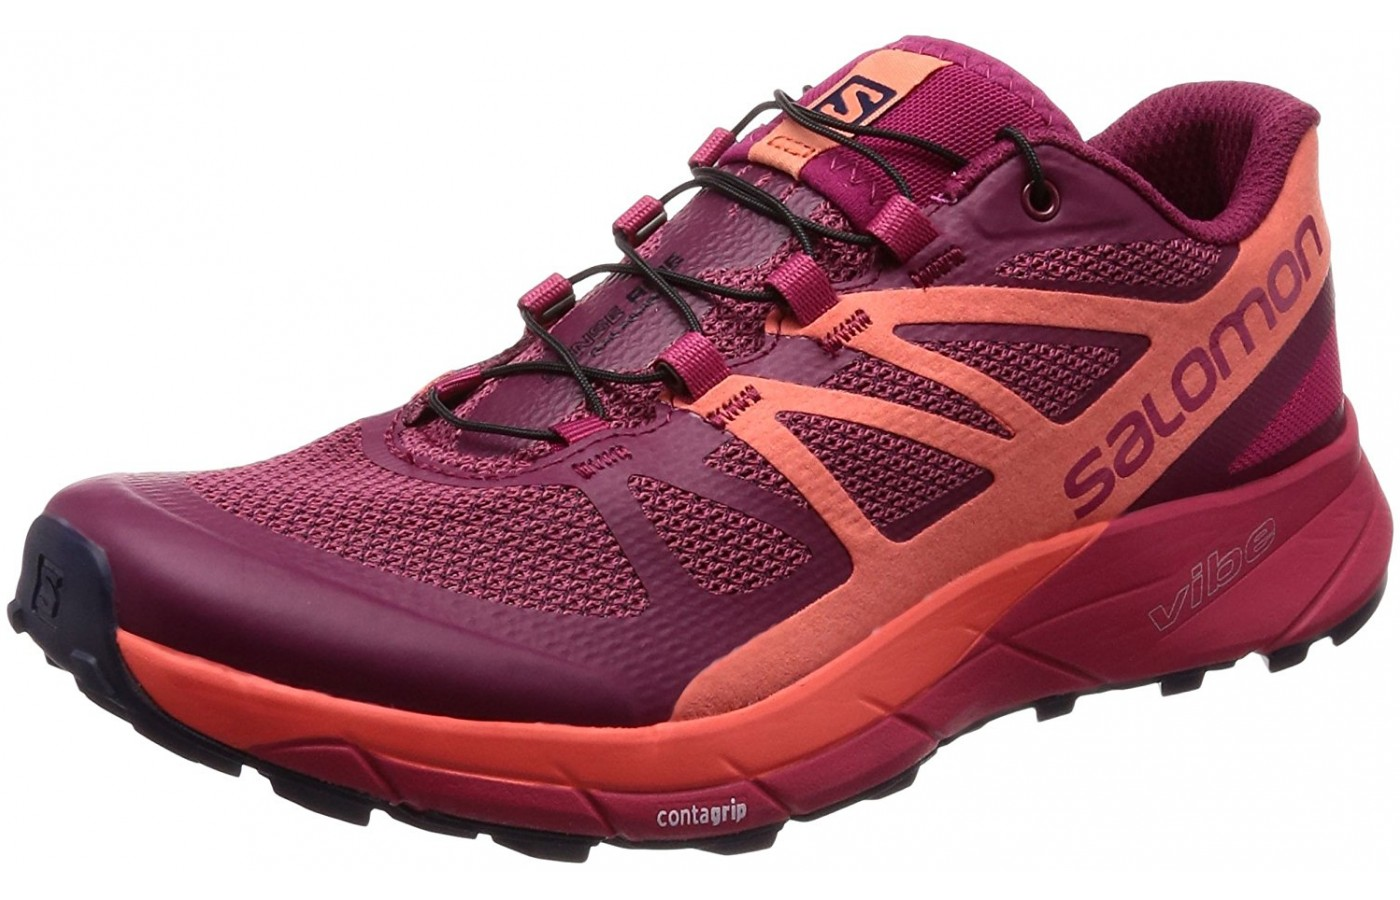 Salomon sense ride angled